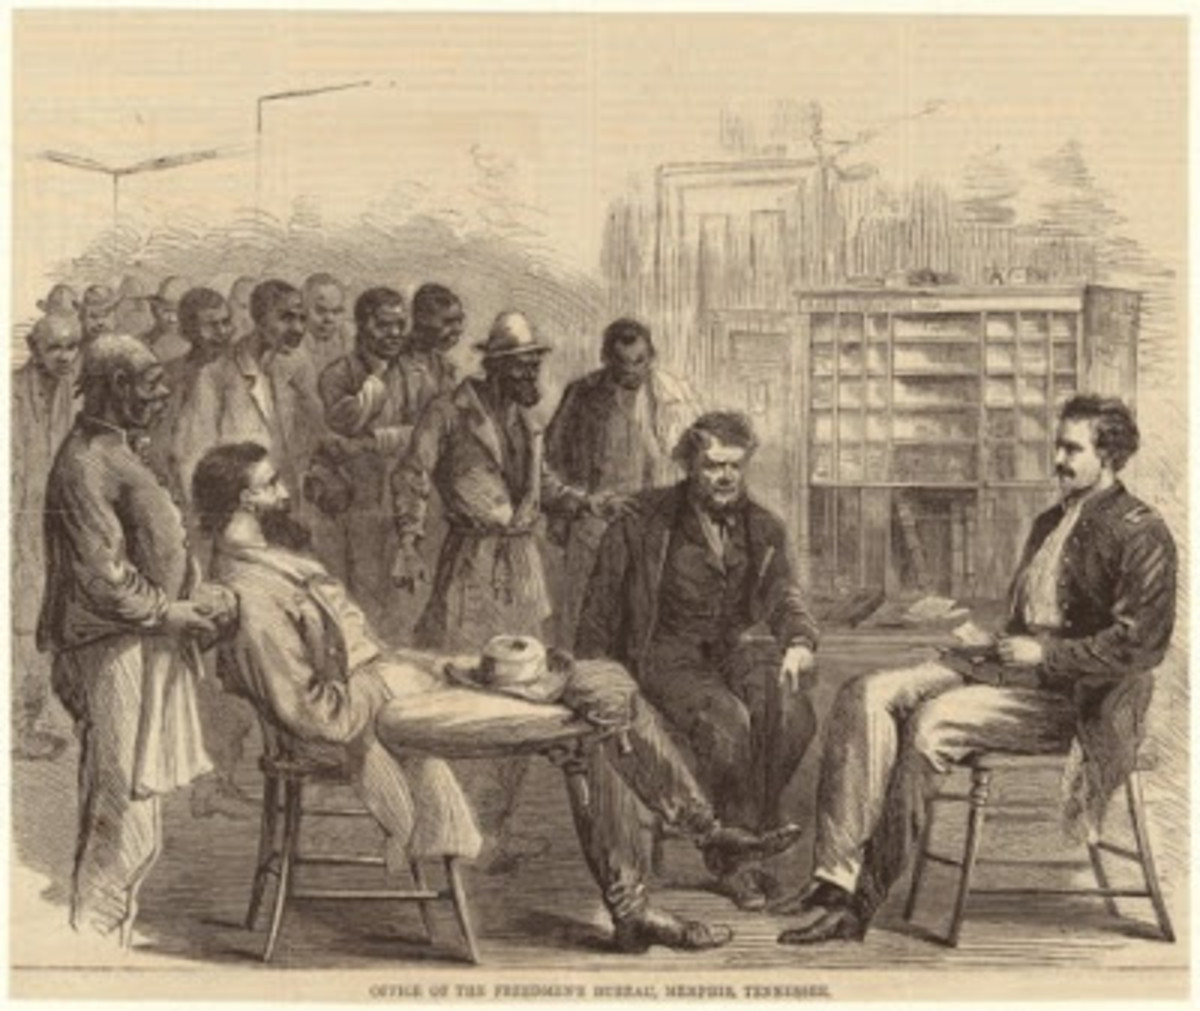 Office of the Freedmen's Bureau, Memphis, Tennessee. (1866) Harper's weekly : a journal of civilization. circa 1857-1916)